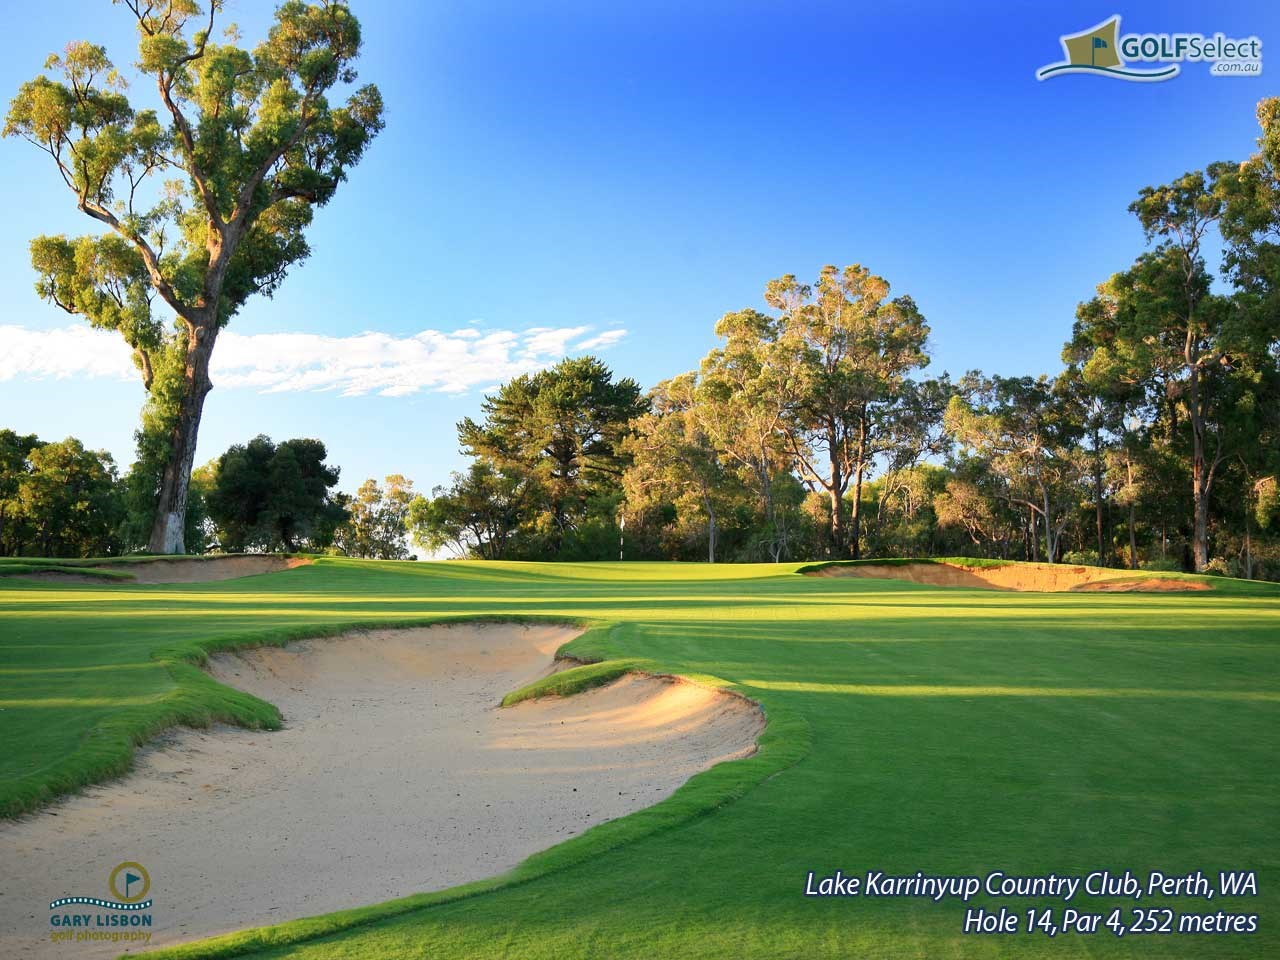 Lake Karrinyup Country Club Hole 14, Par 4, 252 metres